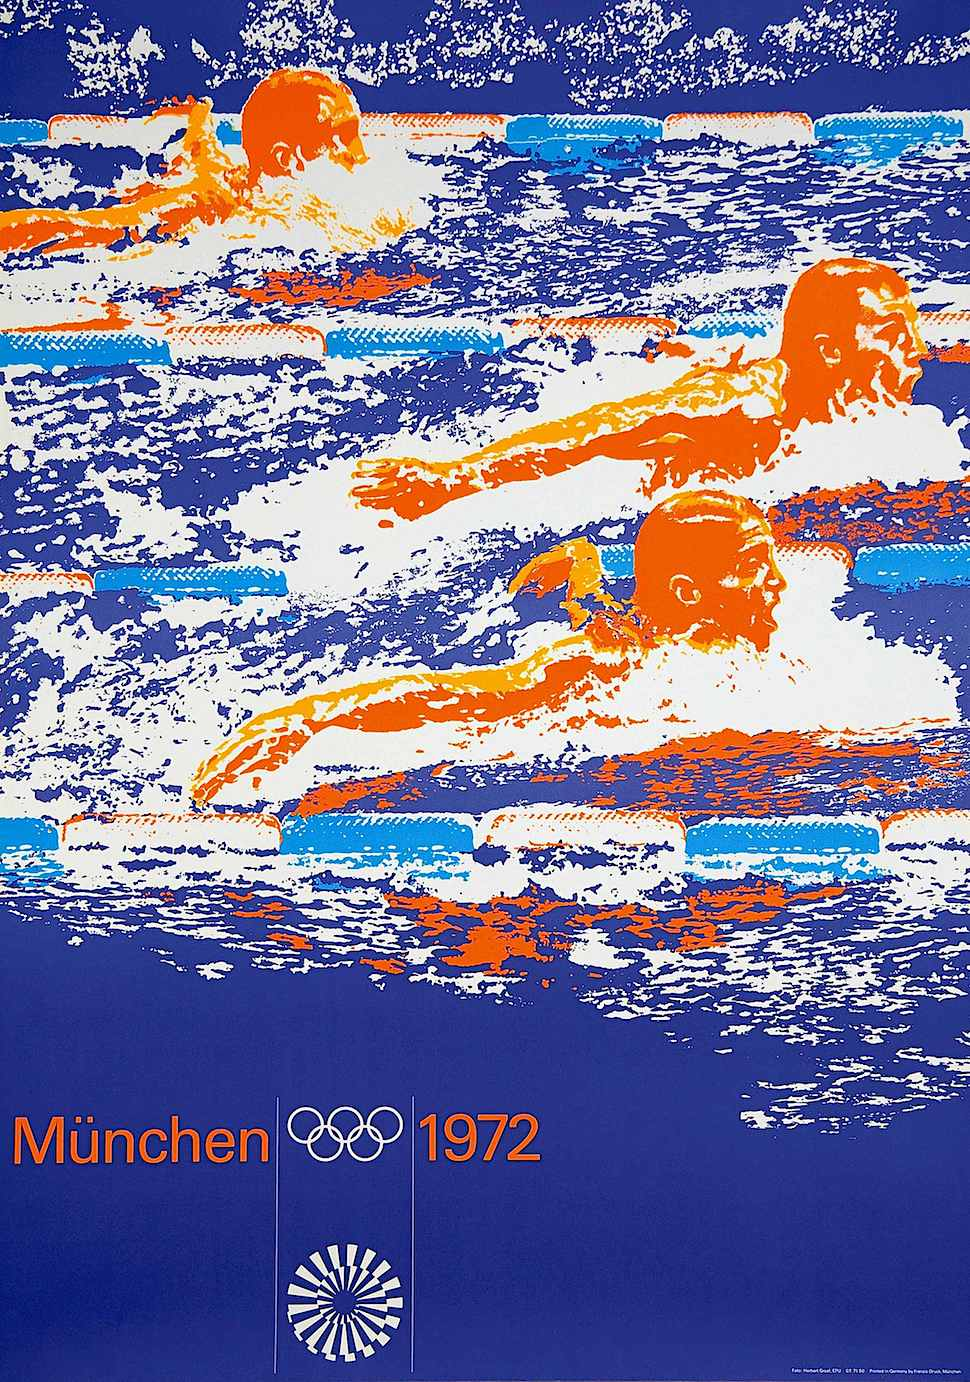 a Herbert Graaf 1972 poster for the Munich Olympics in orange blue and white, showing swimming